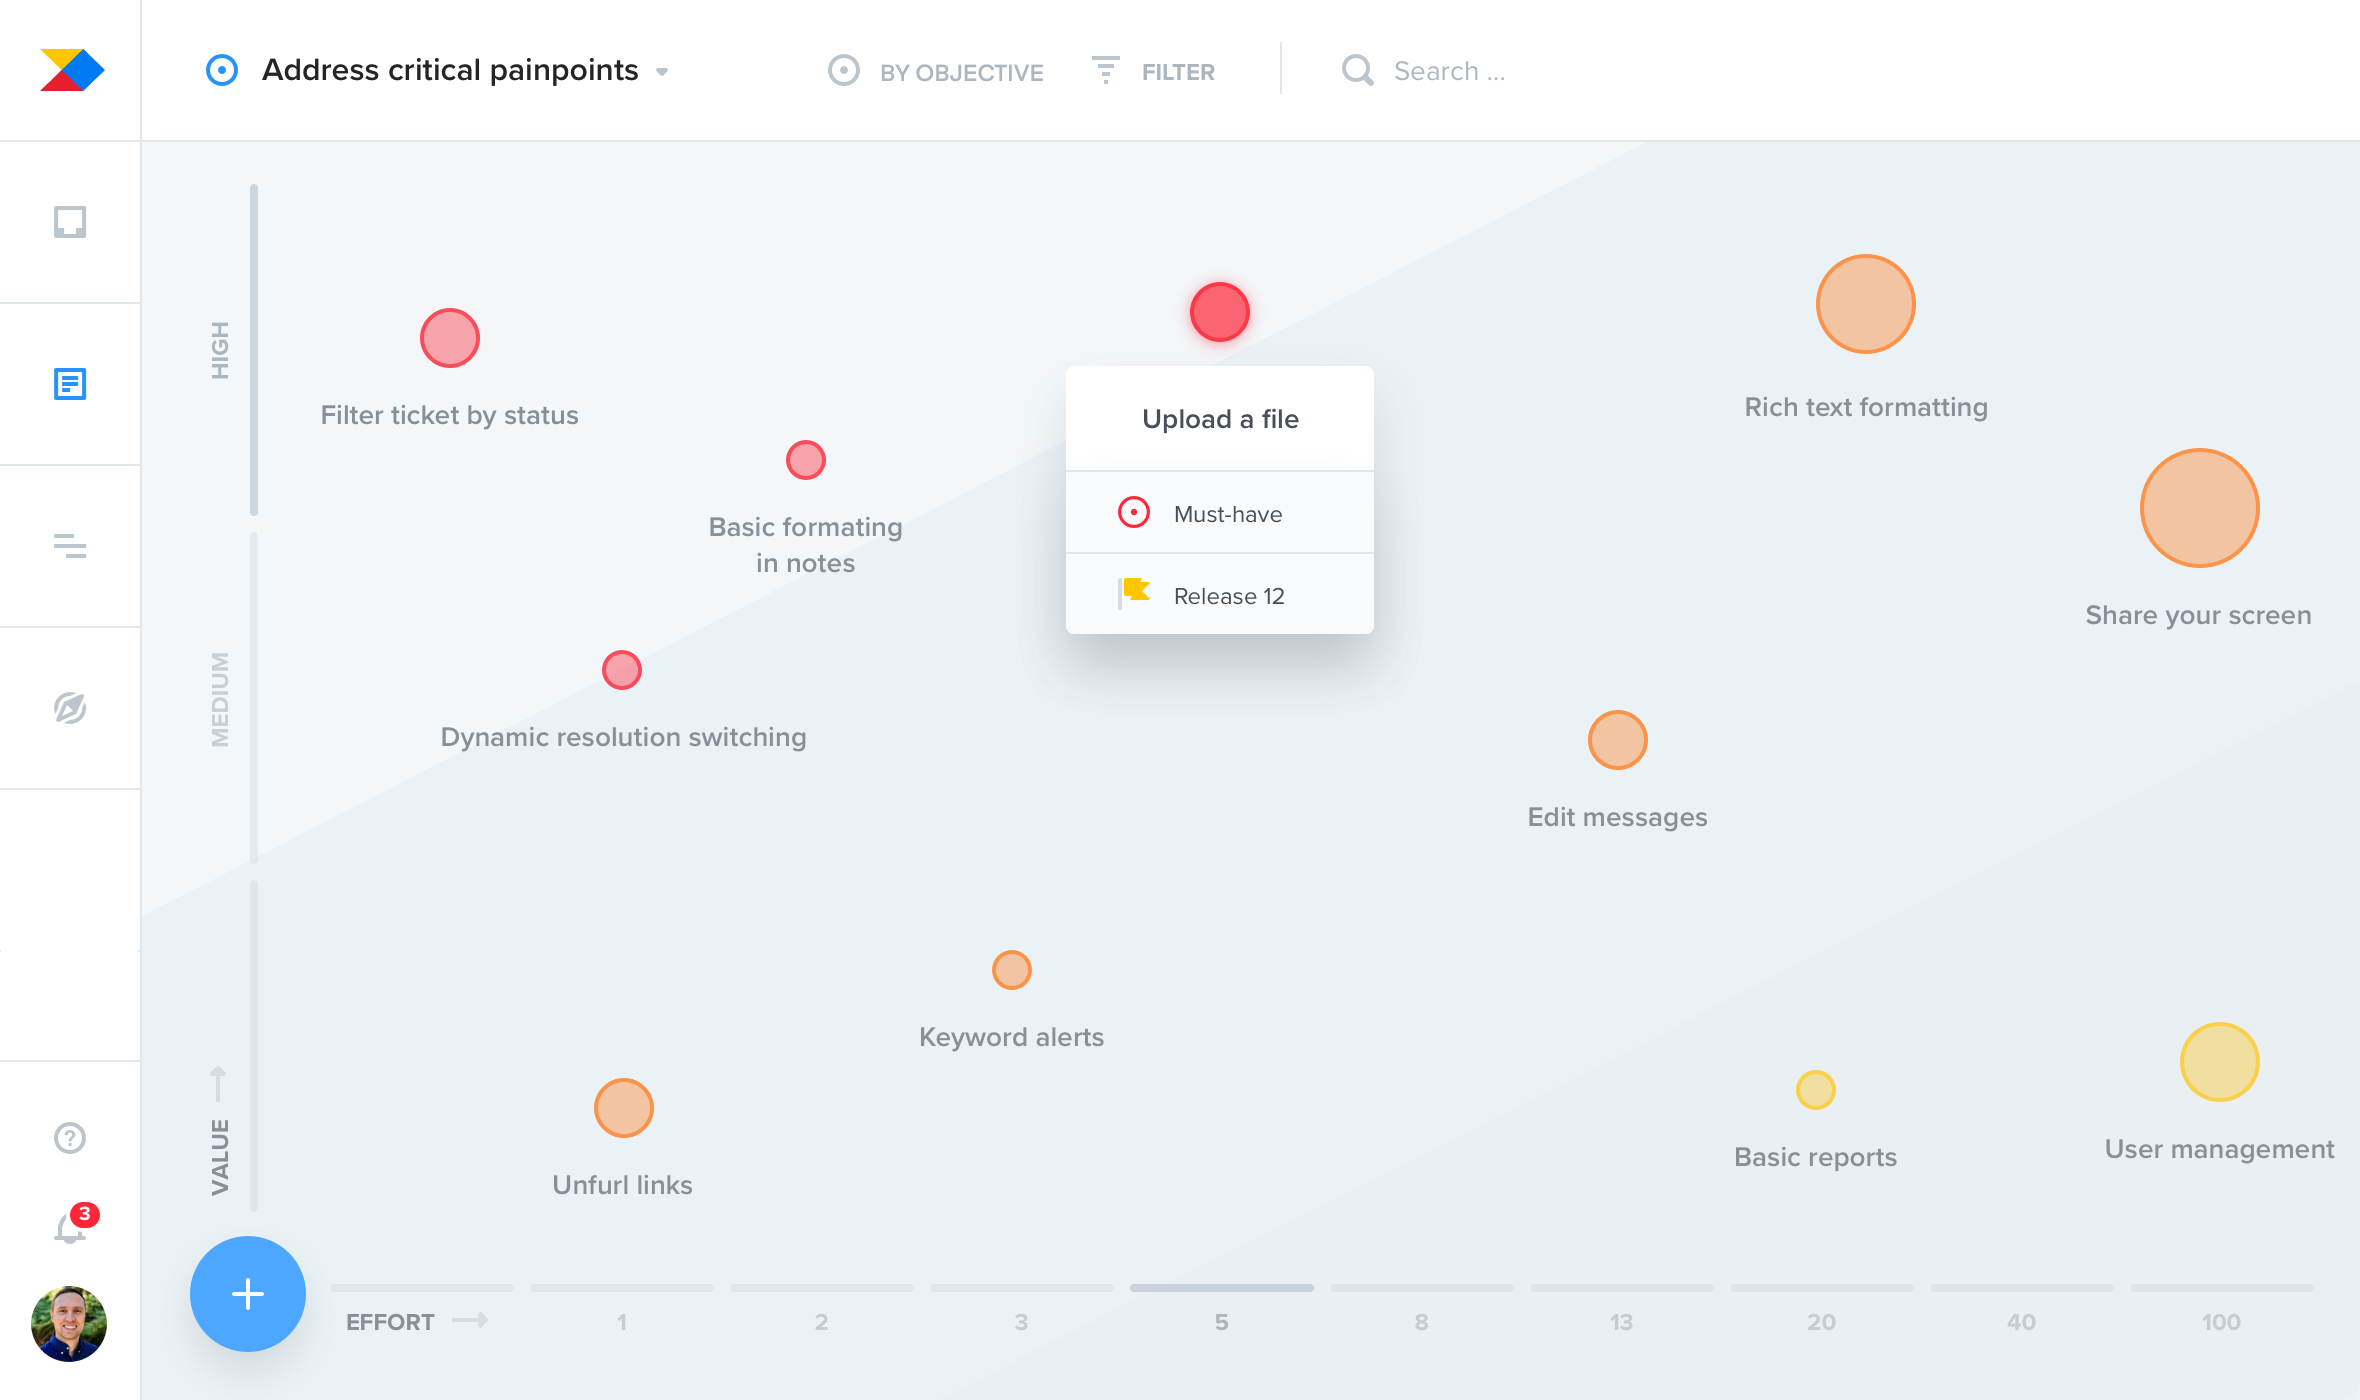 Prioritize features using highly visual interactive drag and drop interfaces like the Prioritization matrix